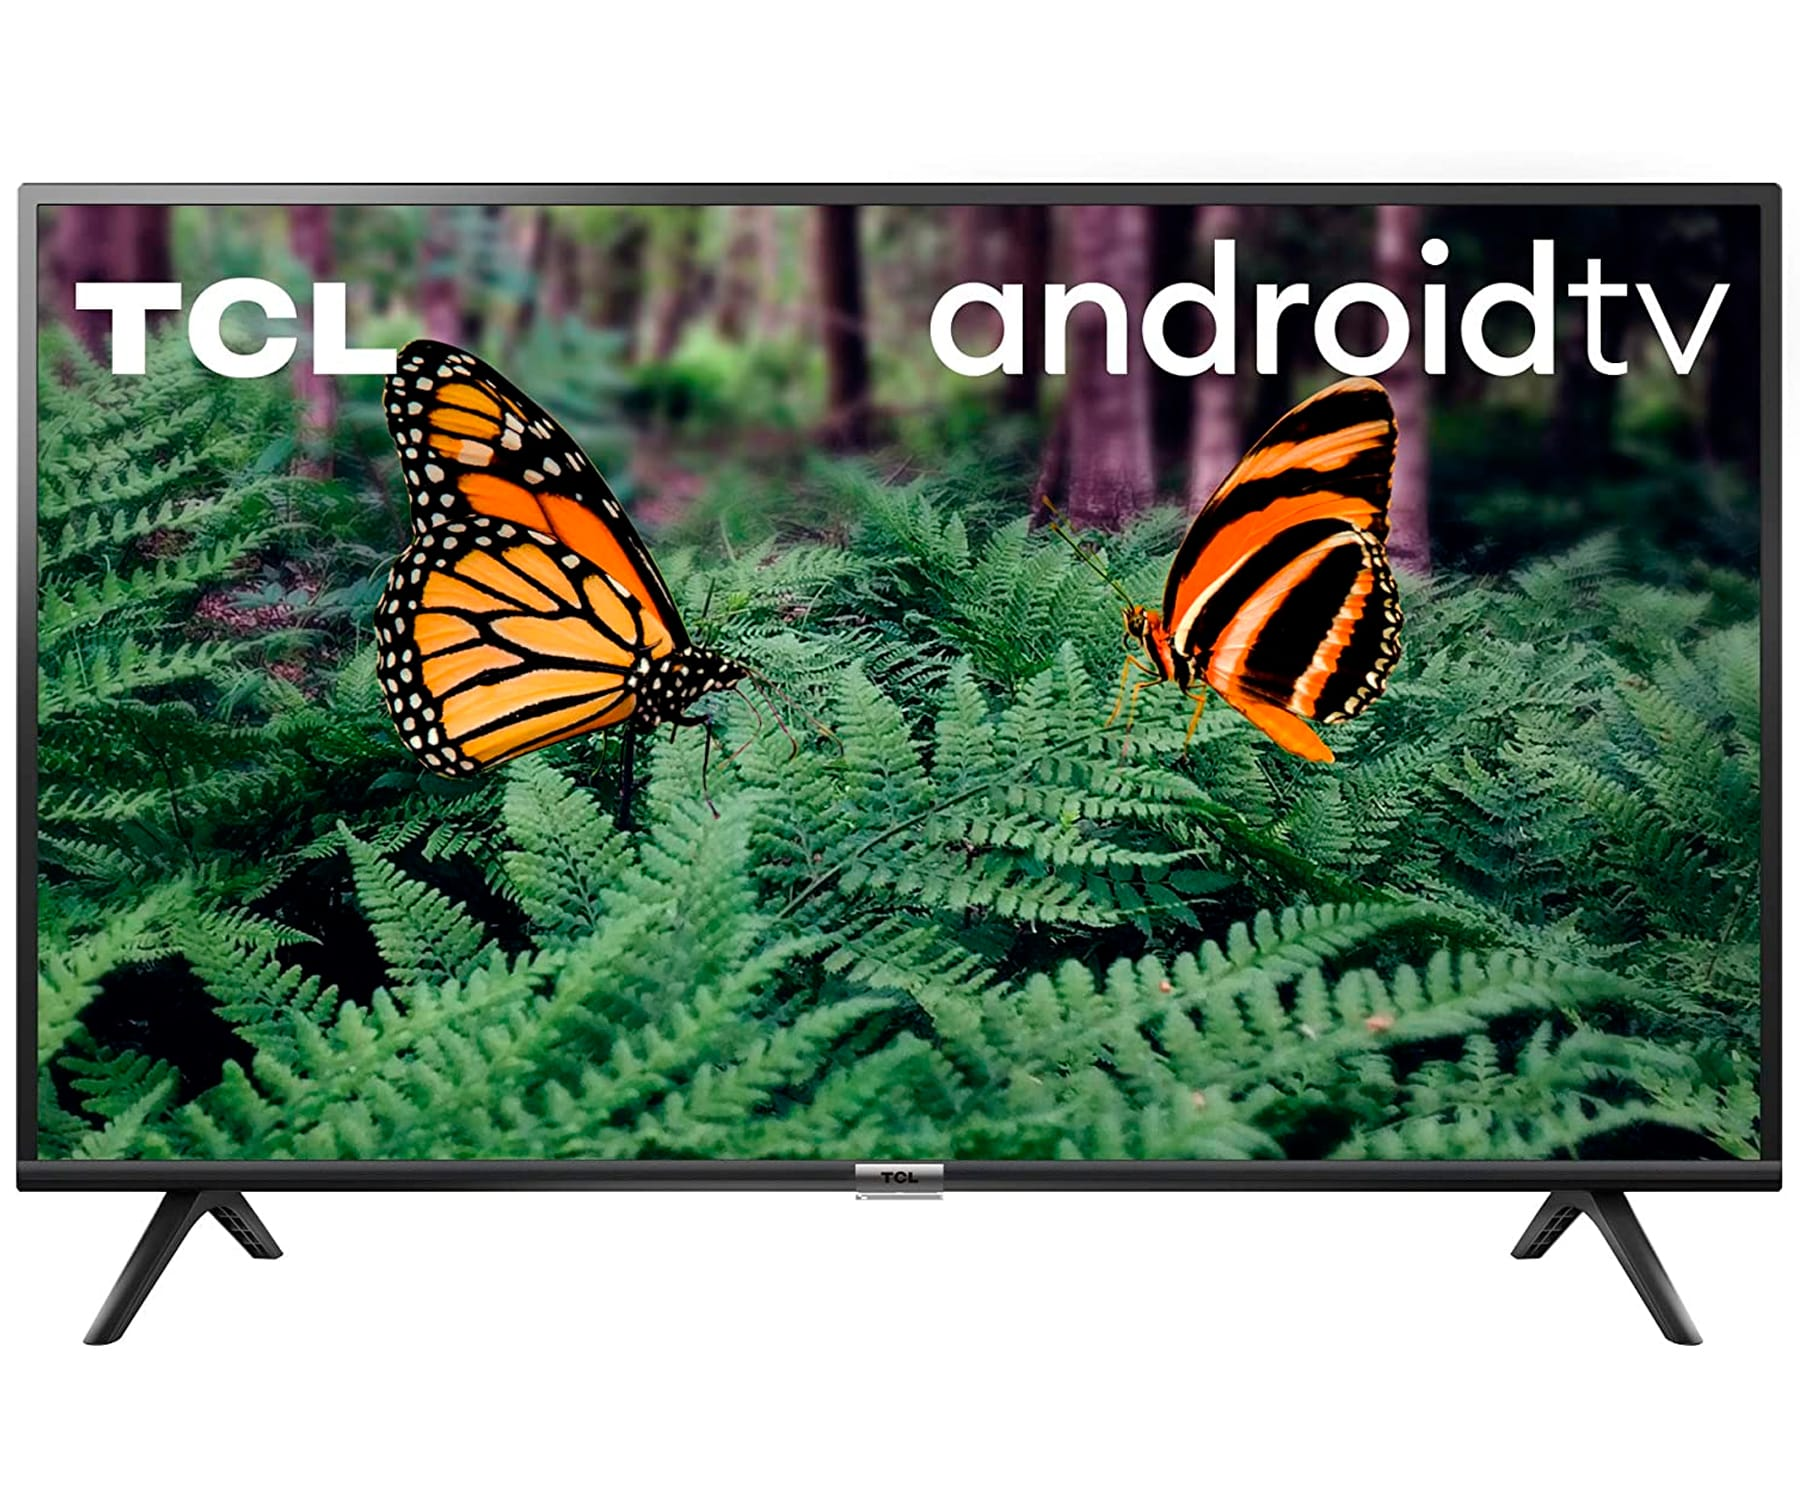 TCL 32ES560 TV 32''/FHD/Smart TV/Android 8.0/Dolby Digital/WiFi